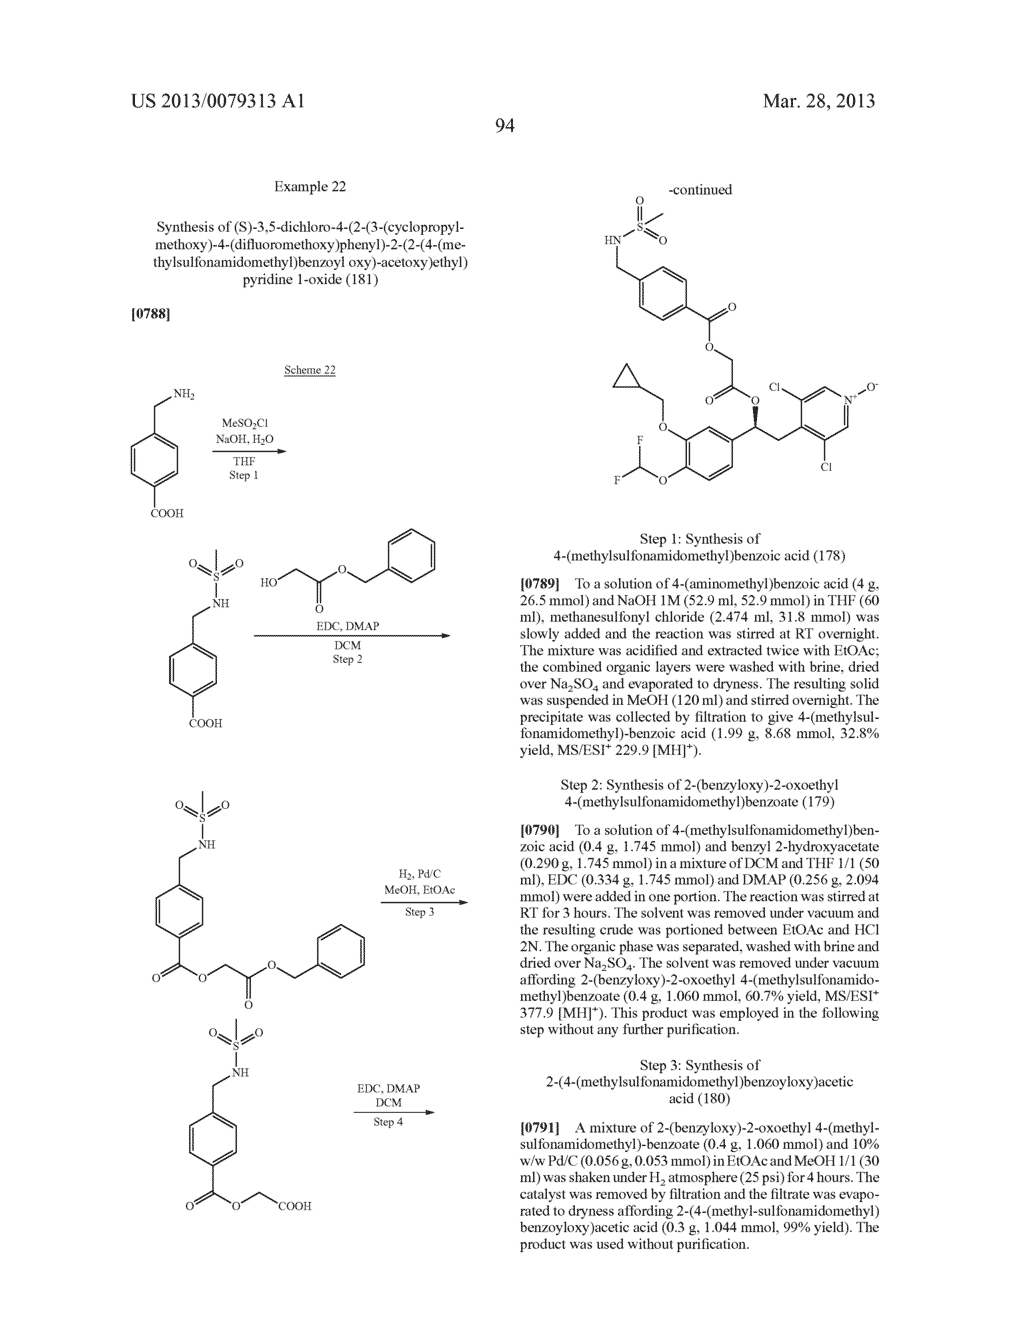 DERIVATIVES OF 1-PHENYL-2-PYRIDINYL ALKYL ALCOHOLS AS PHOSPHODIESTERASE     INHIBITORS - diagram, schematic, and image 95